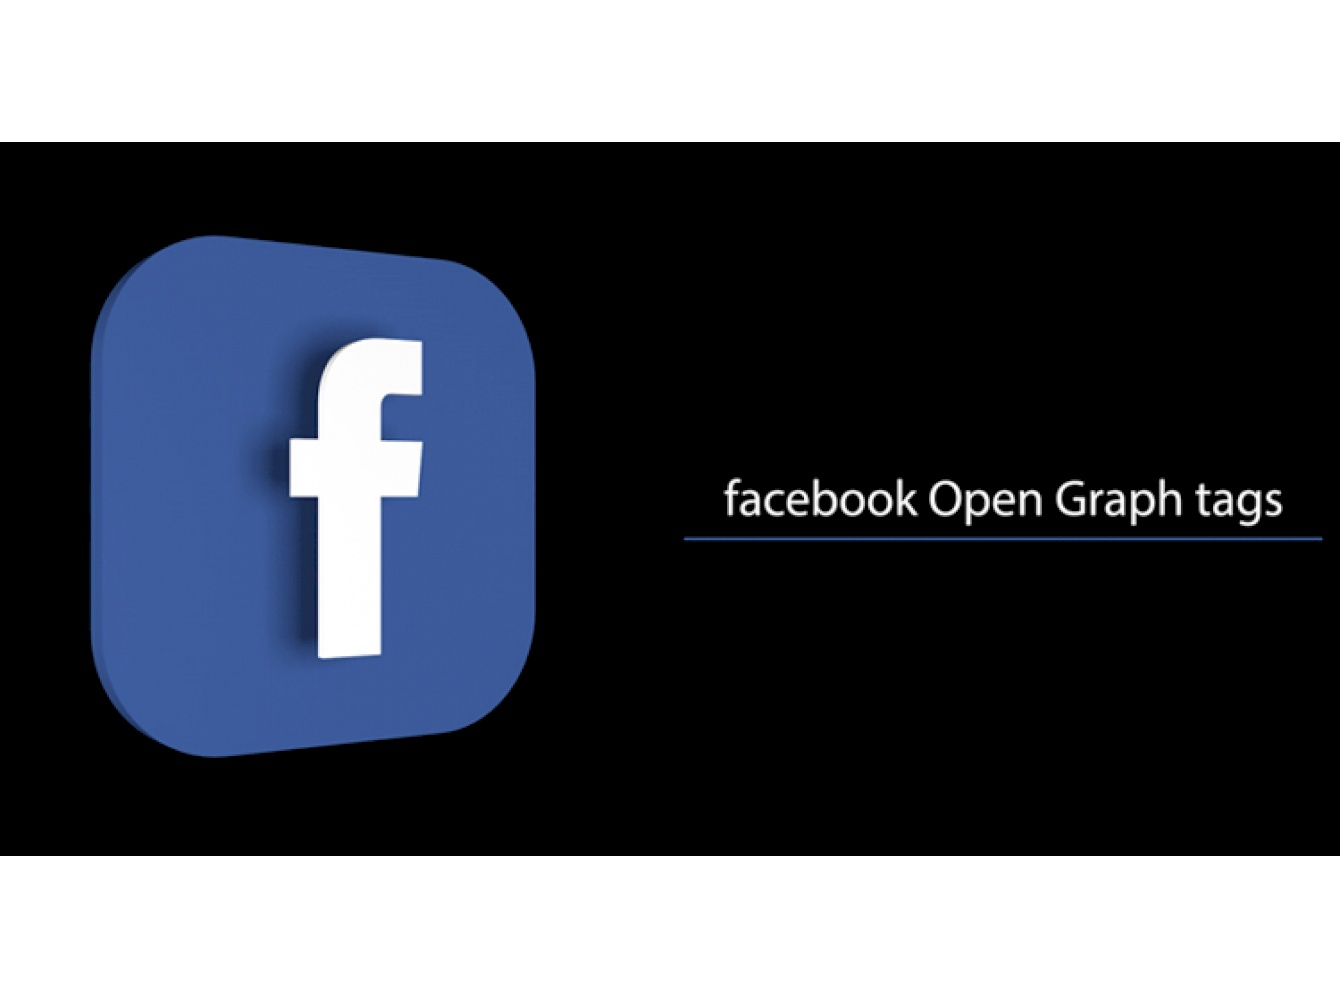 Facebook Open Graph Markup microdata tags